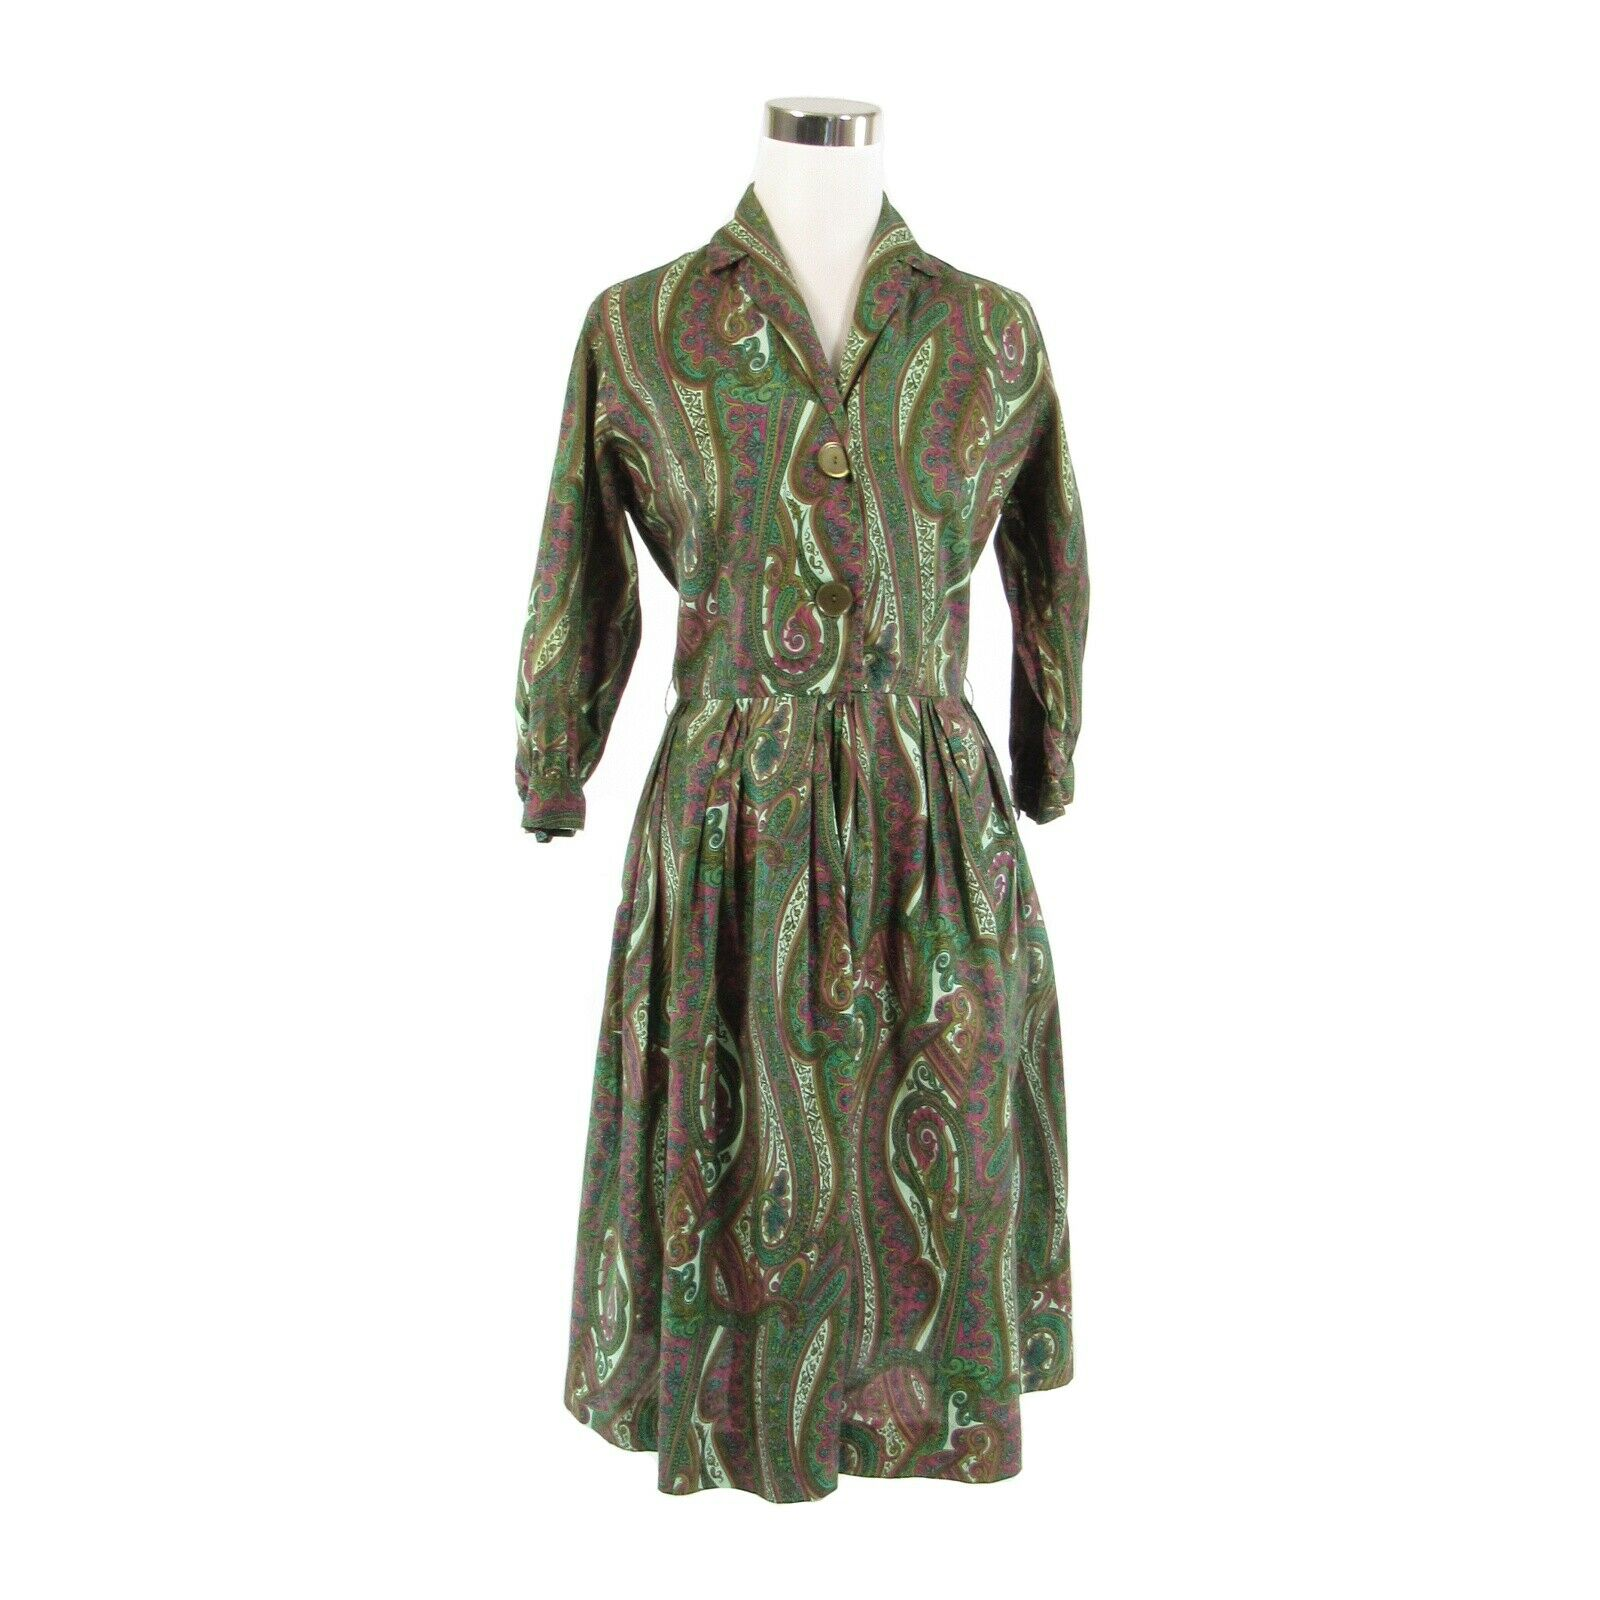 Green purple paisley 100% cotton KAY WINDSOR vintage A-line dress S-Newish